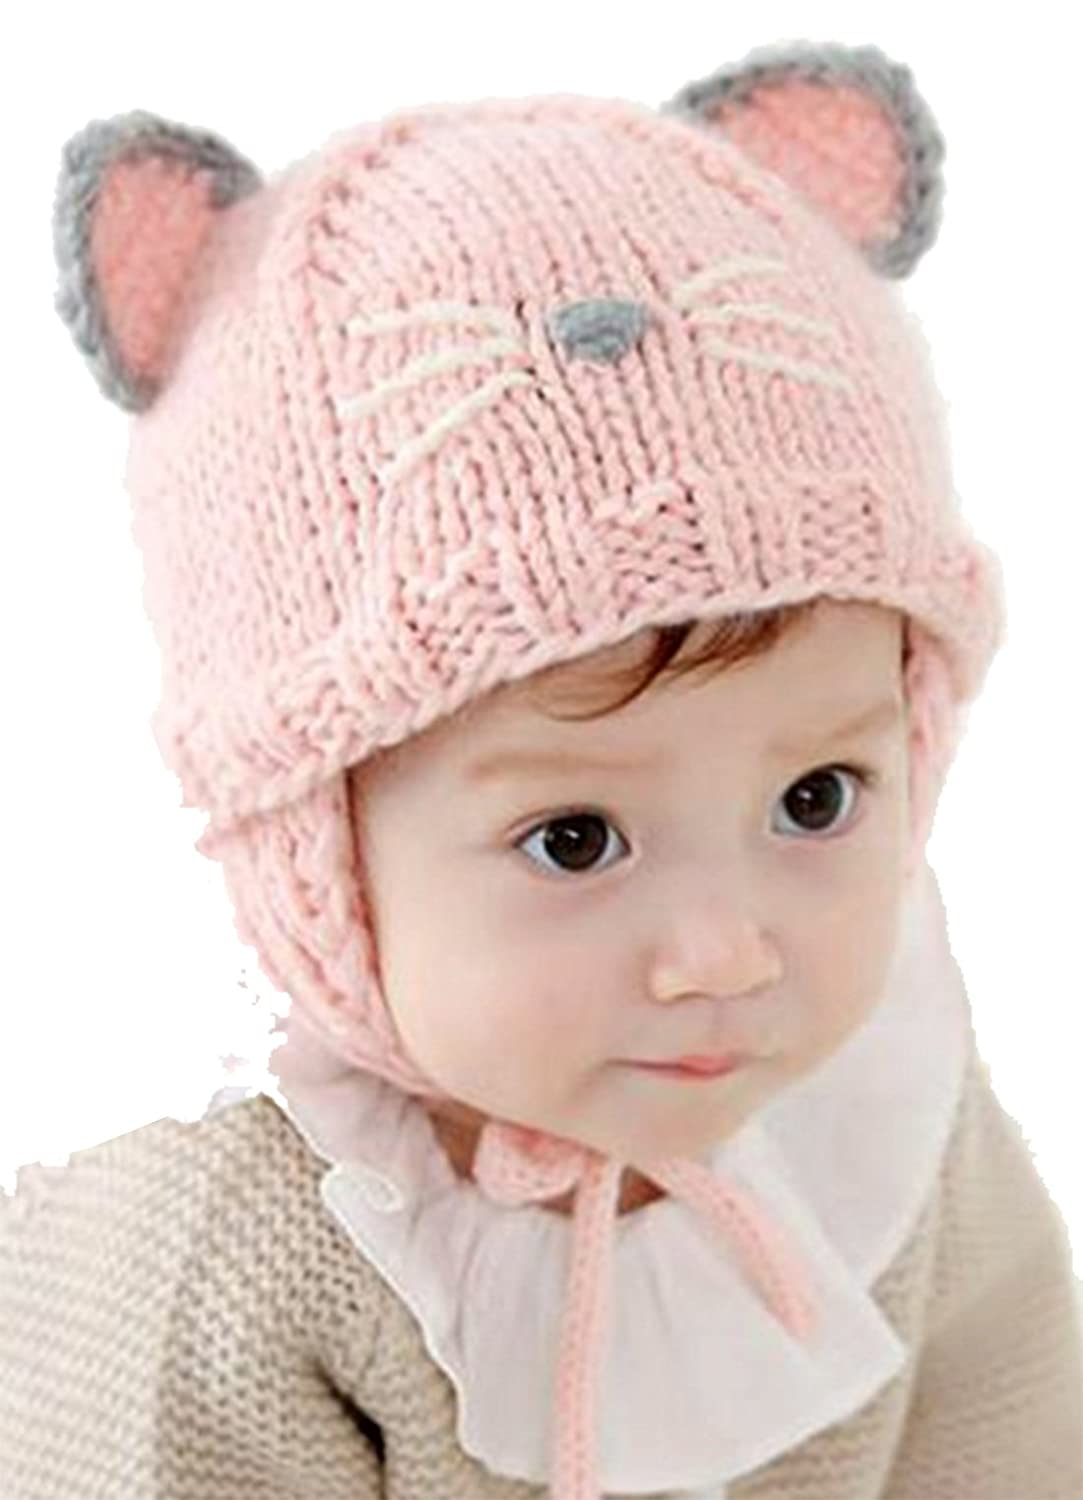 60473a64 ZEHAT New Cat Ear Knit Wool Crochet Cap Cute Winter Baby Kids Girls Boys  Warm Hats (Pink/Black)